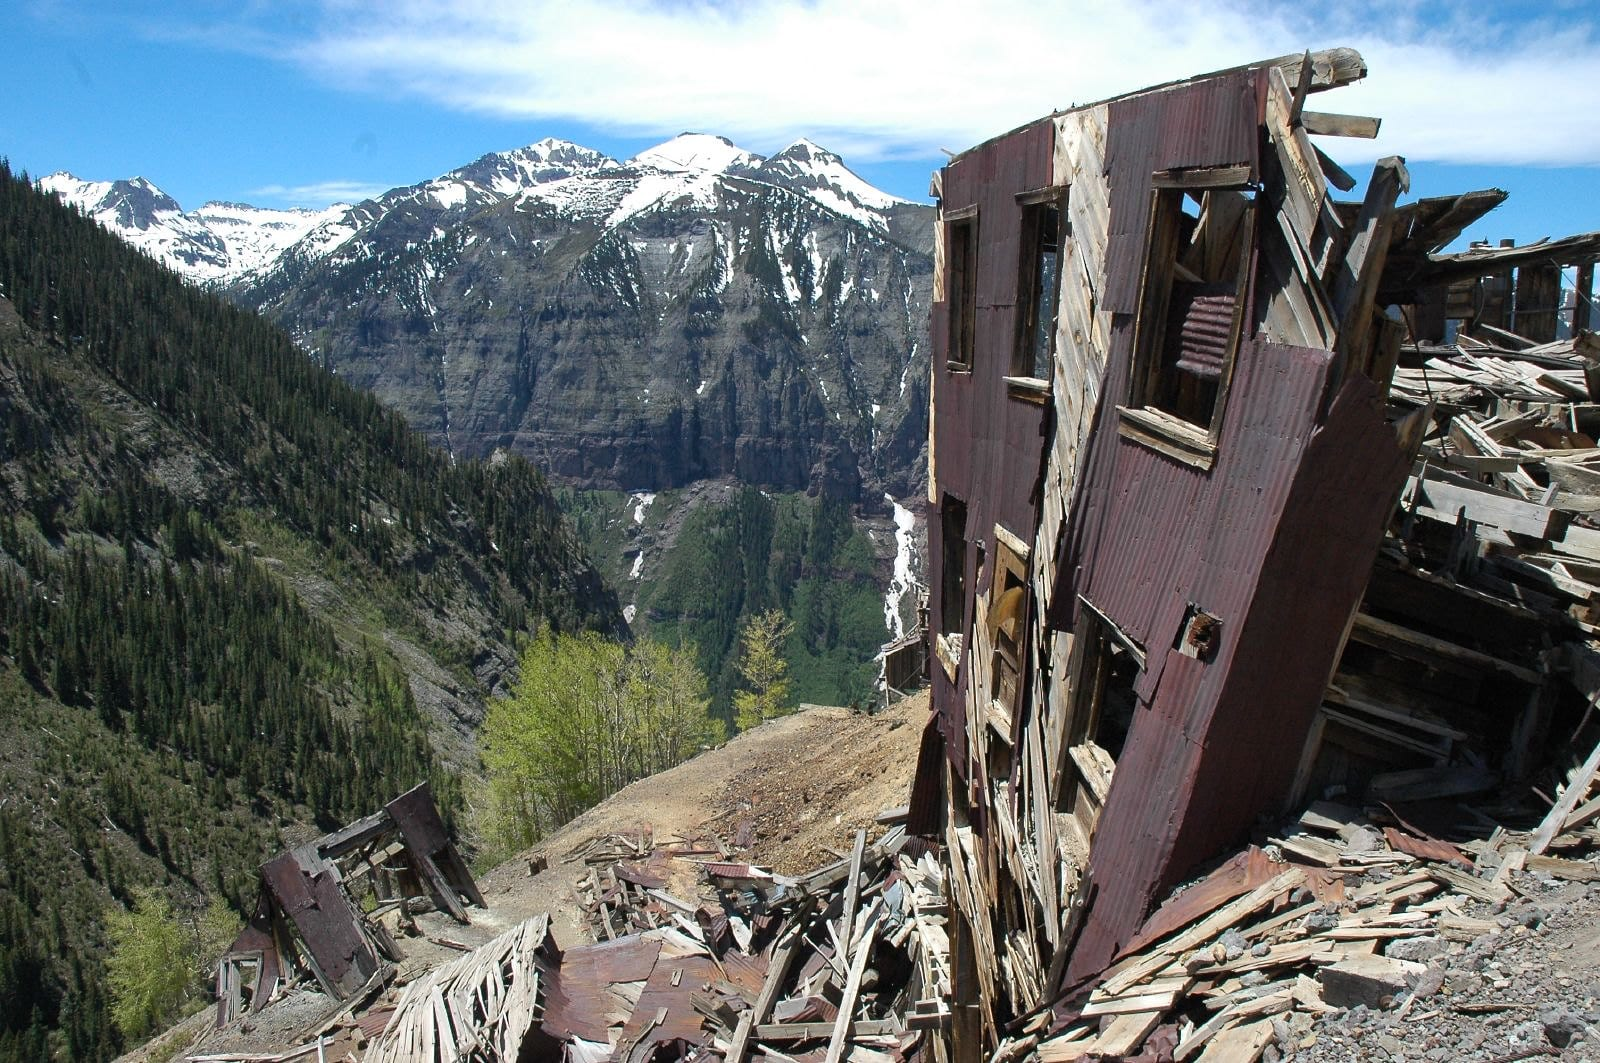 Image of a collapsing building in Tomboy, Colorado